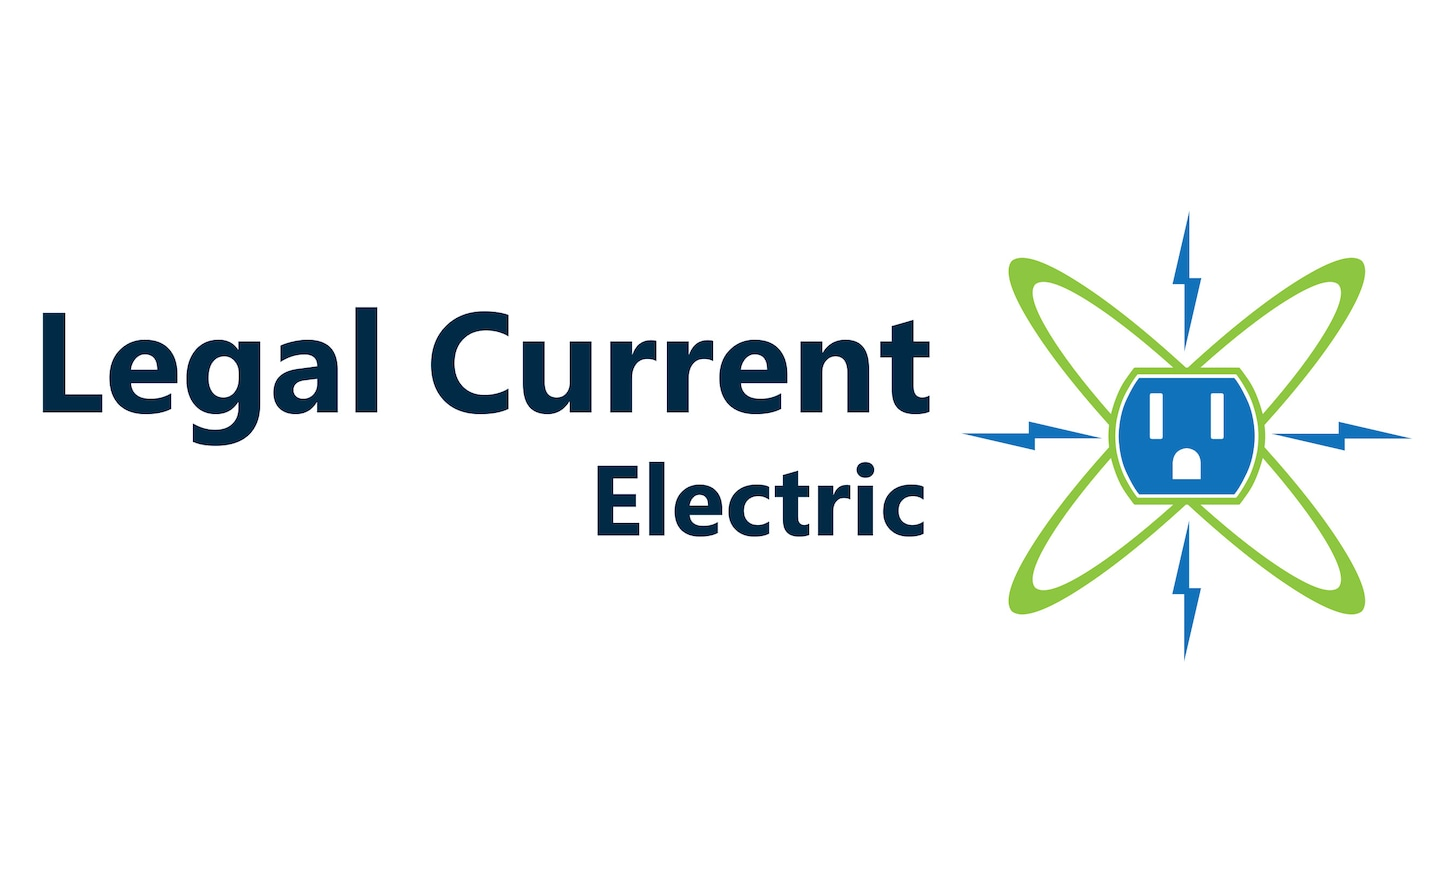 Legal Current Electric